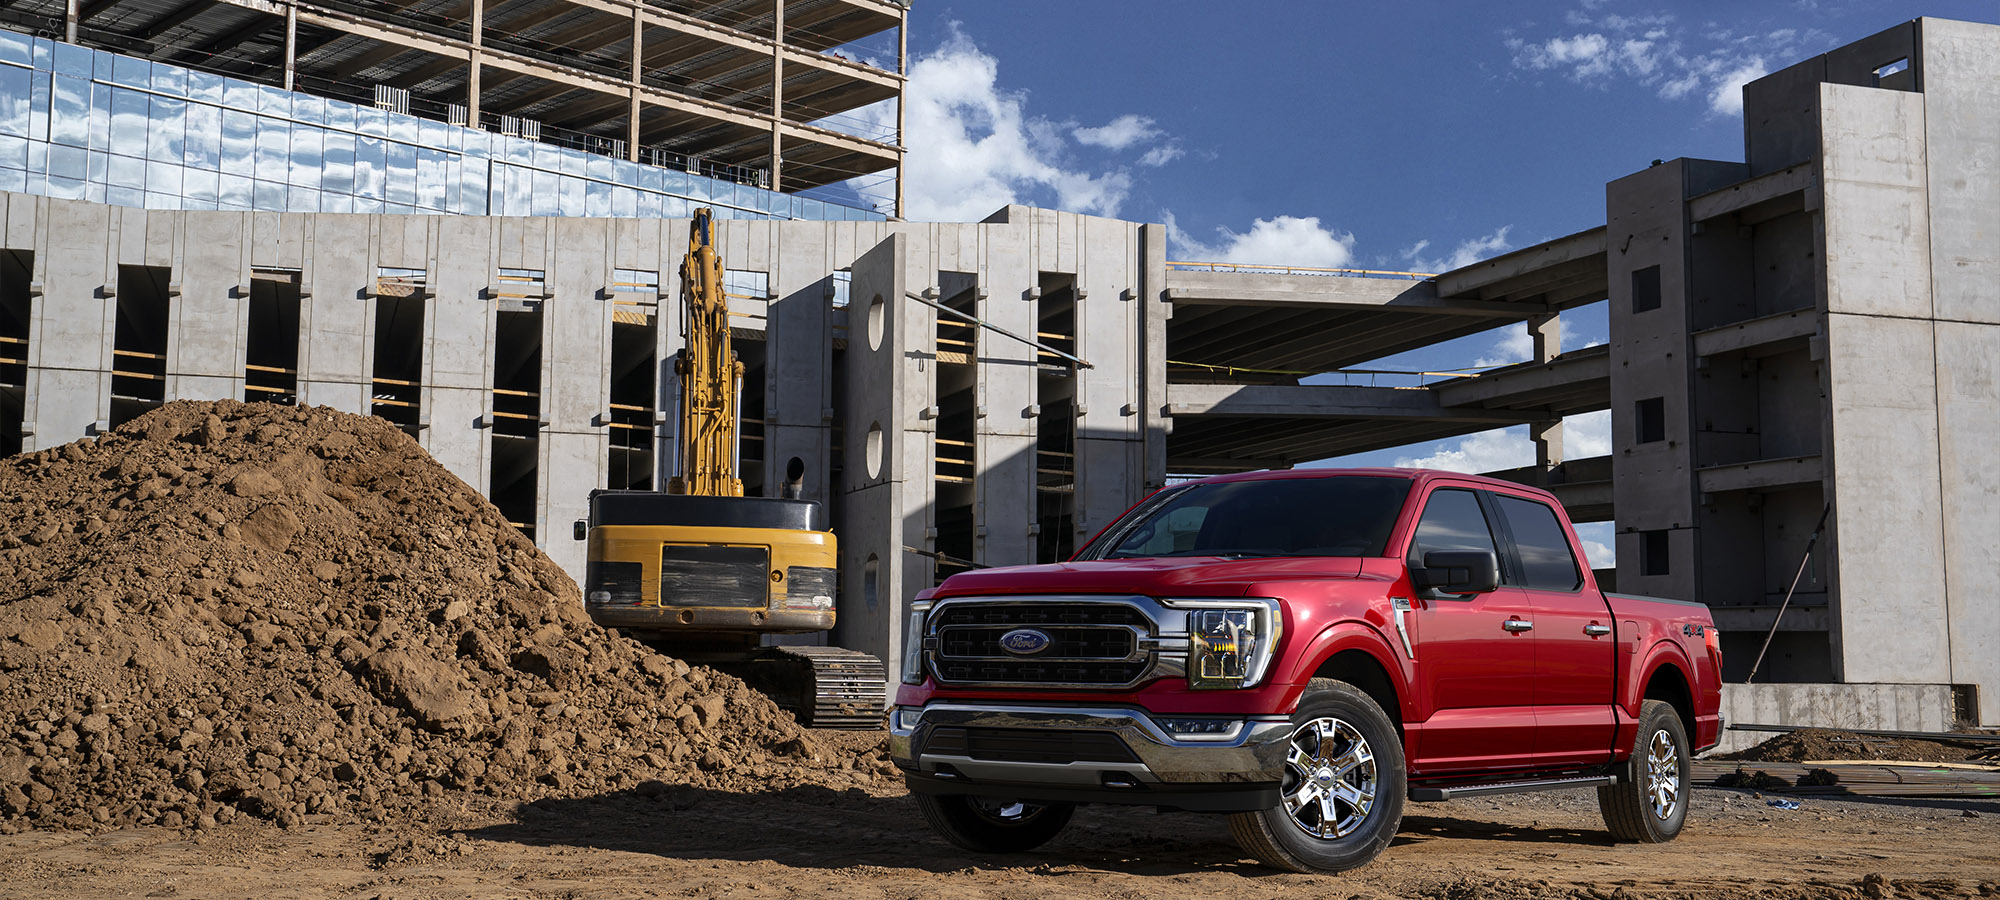 Ford F-150 Complete Fleet Sales